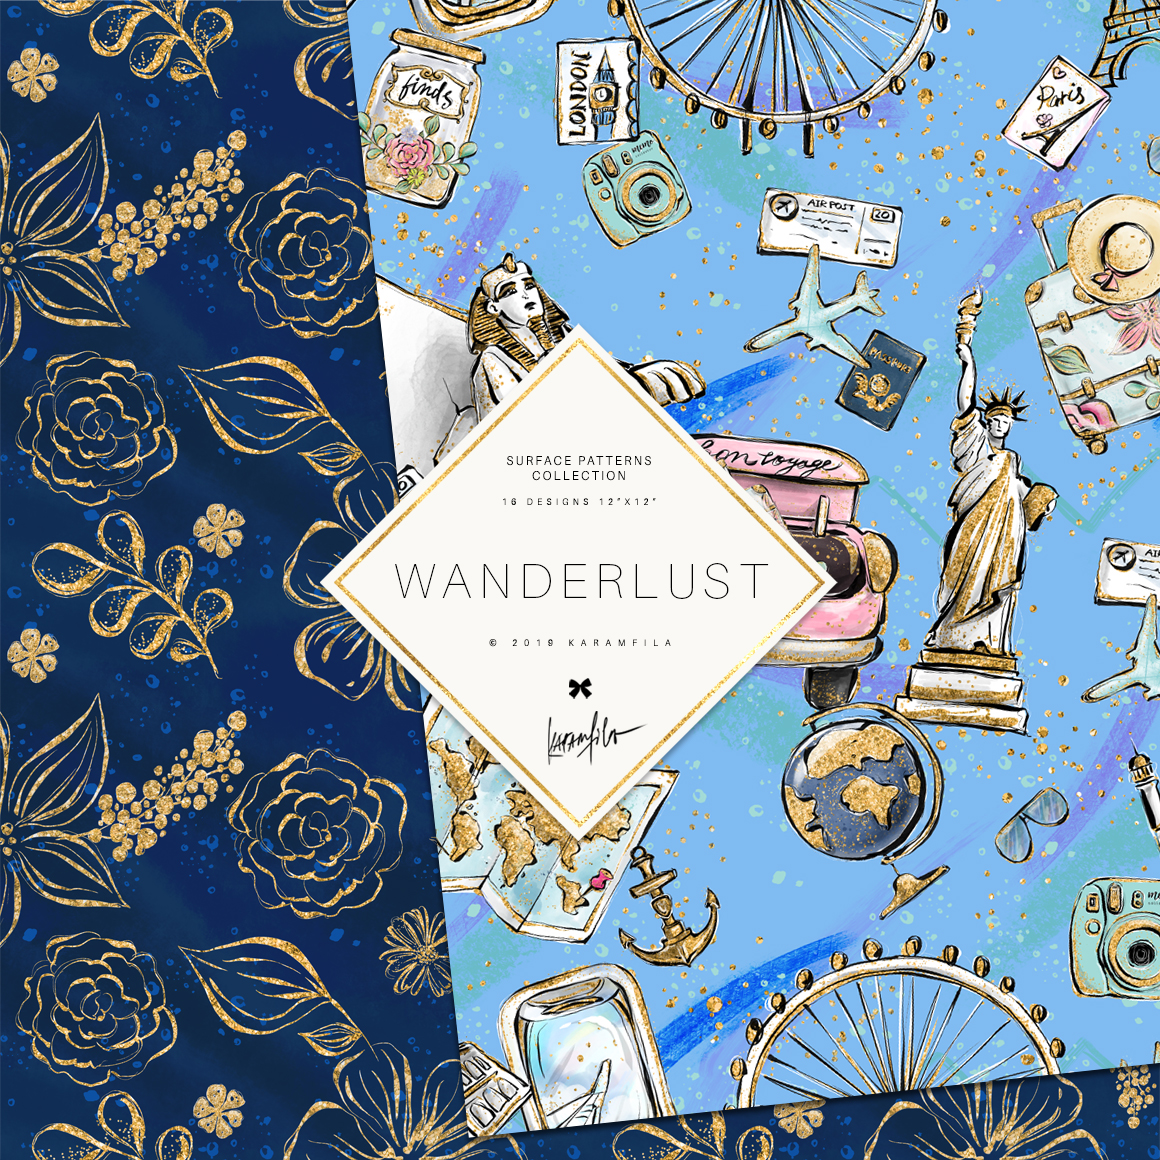 Wanderlust Patterns example image 2